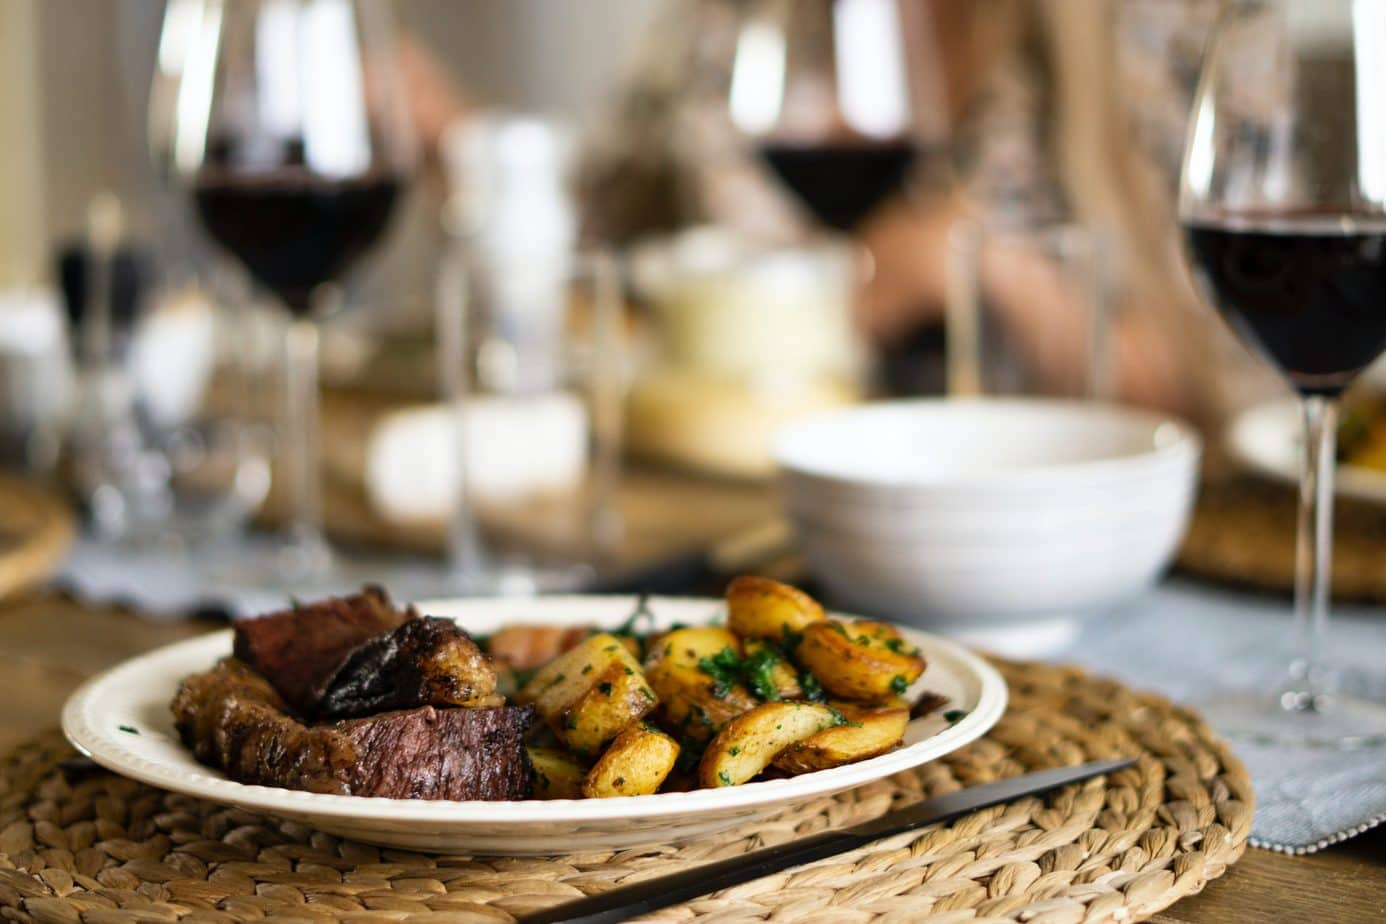 Prime rib with wine pair - featured image